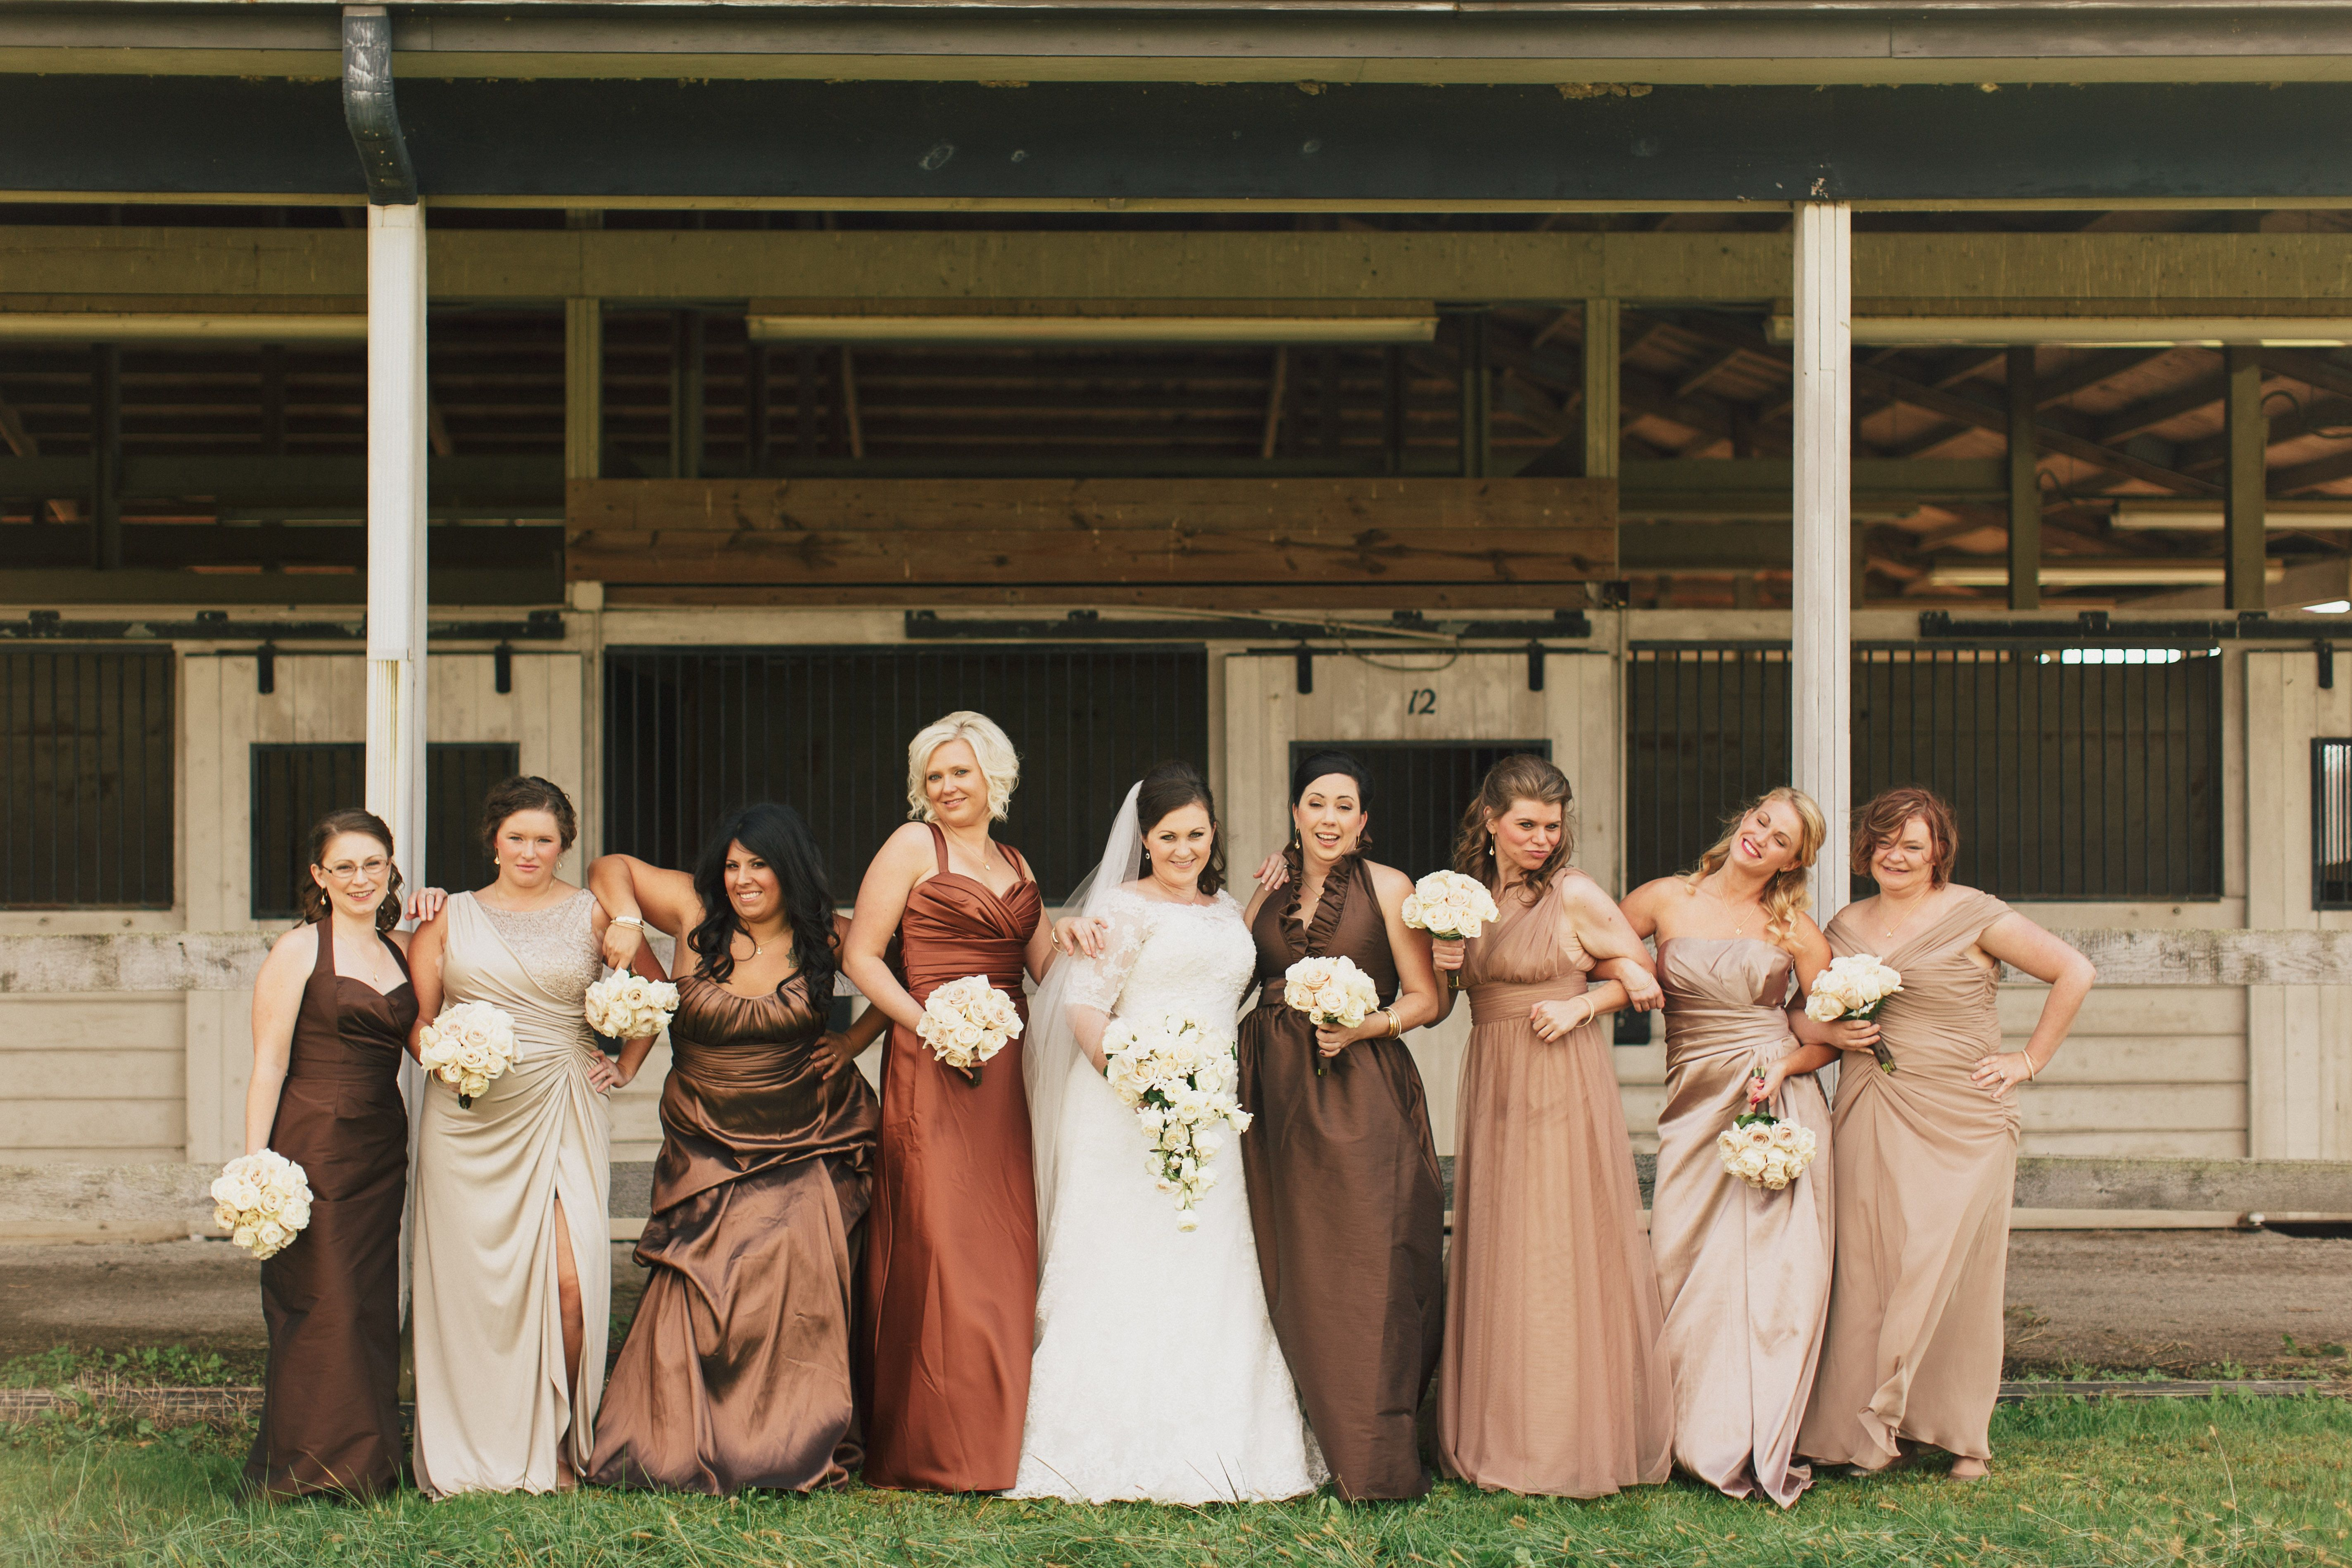 Pin By Kelsey Lawrence On Weddings Ombre Bridesmaid Dresses Brown Bridesmaid Dresses Fall Wedding Bridesmaid Dresses